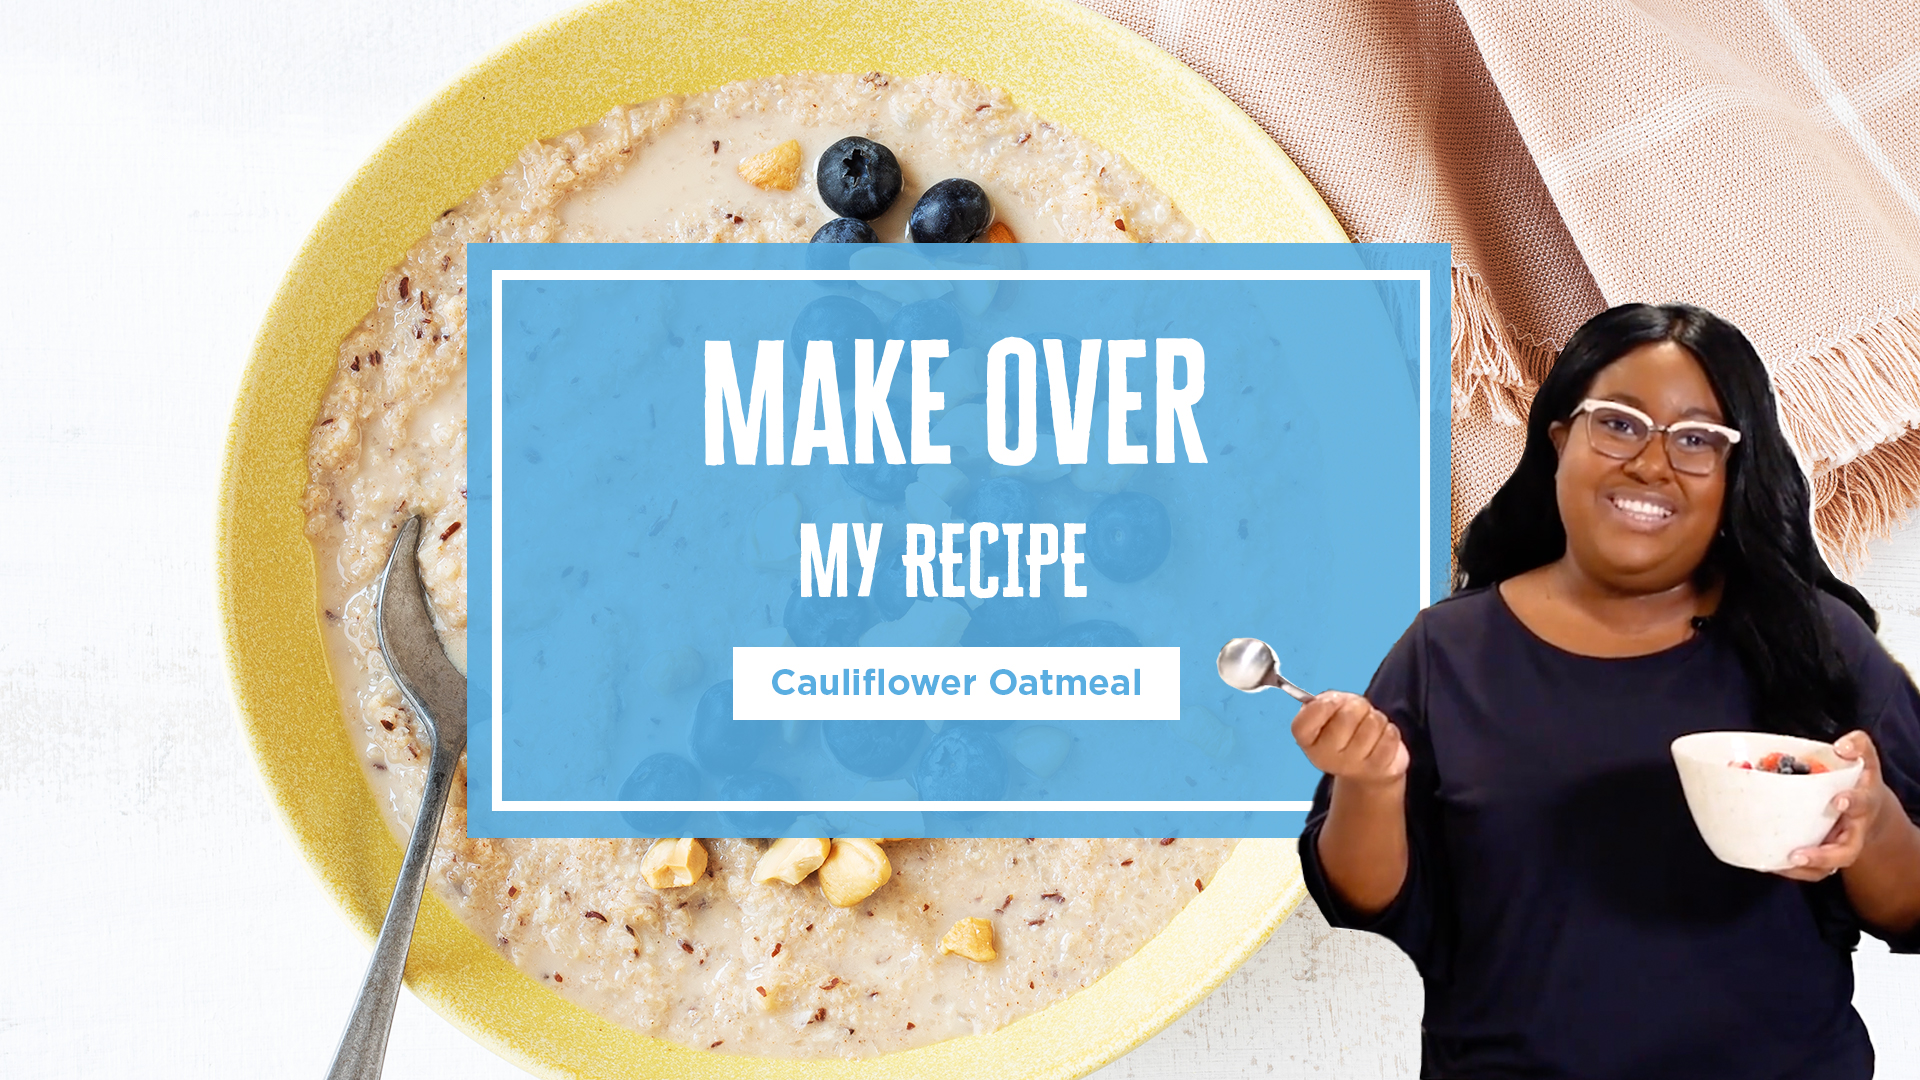 Make over My Recipe Cauliflower Oatmeal promo image